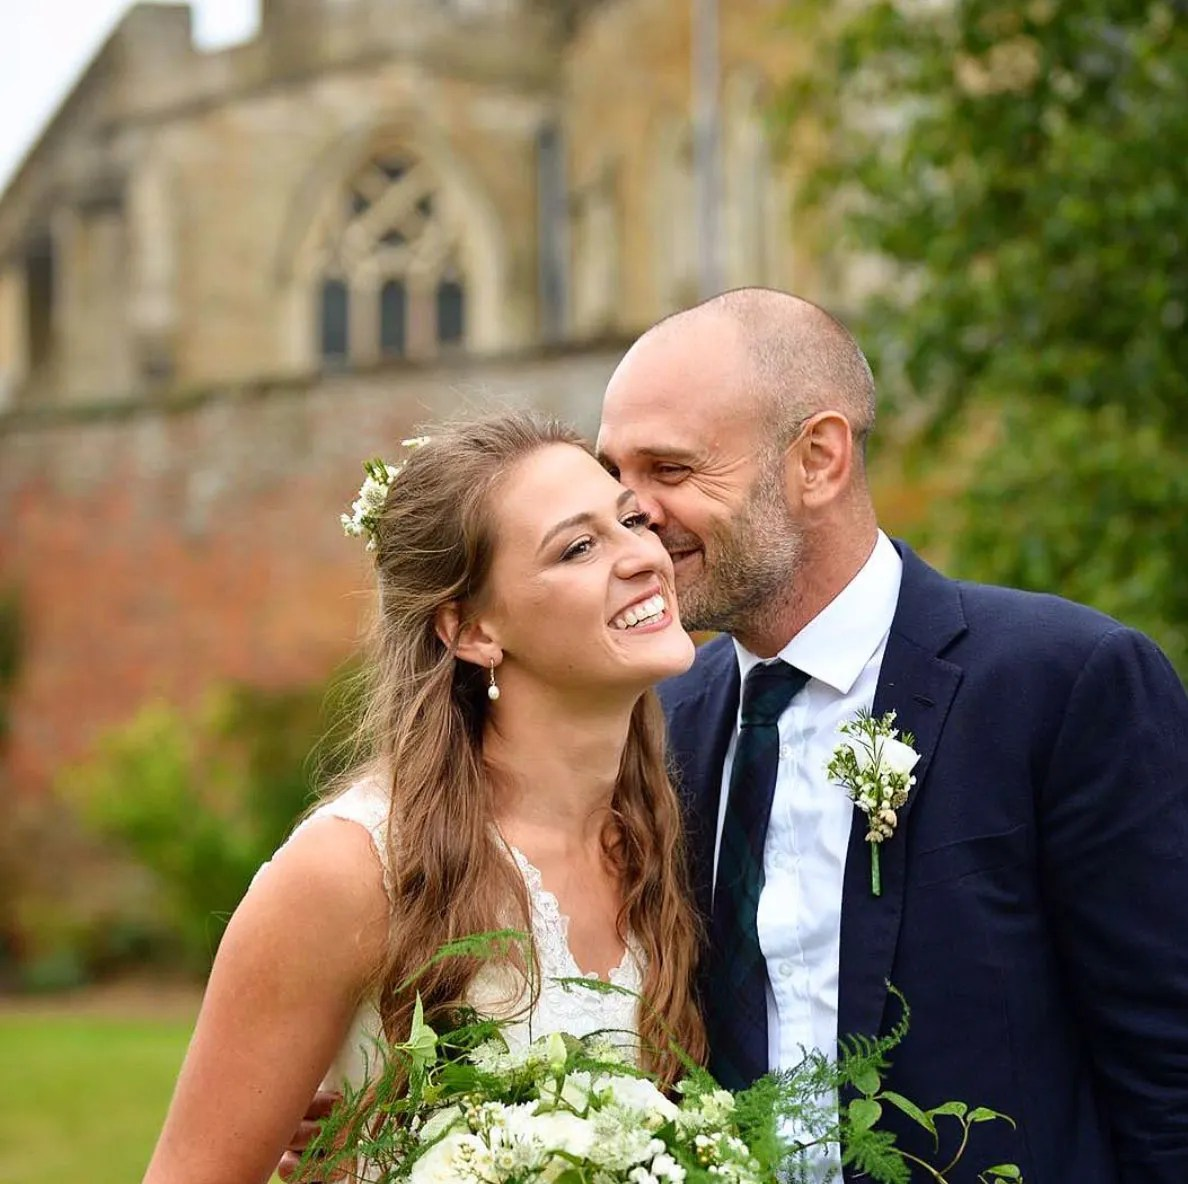 Adventurers Laura Bingham and Ed Stafford celebrating their wedding reception in the walled garden of their home in Hallaton, Leicestershire